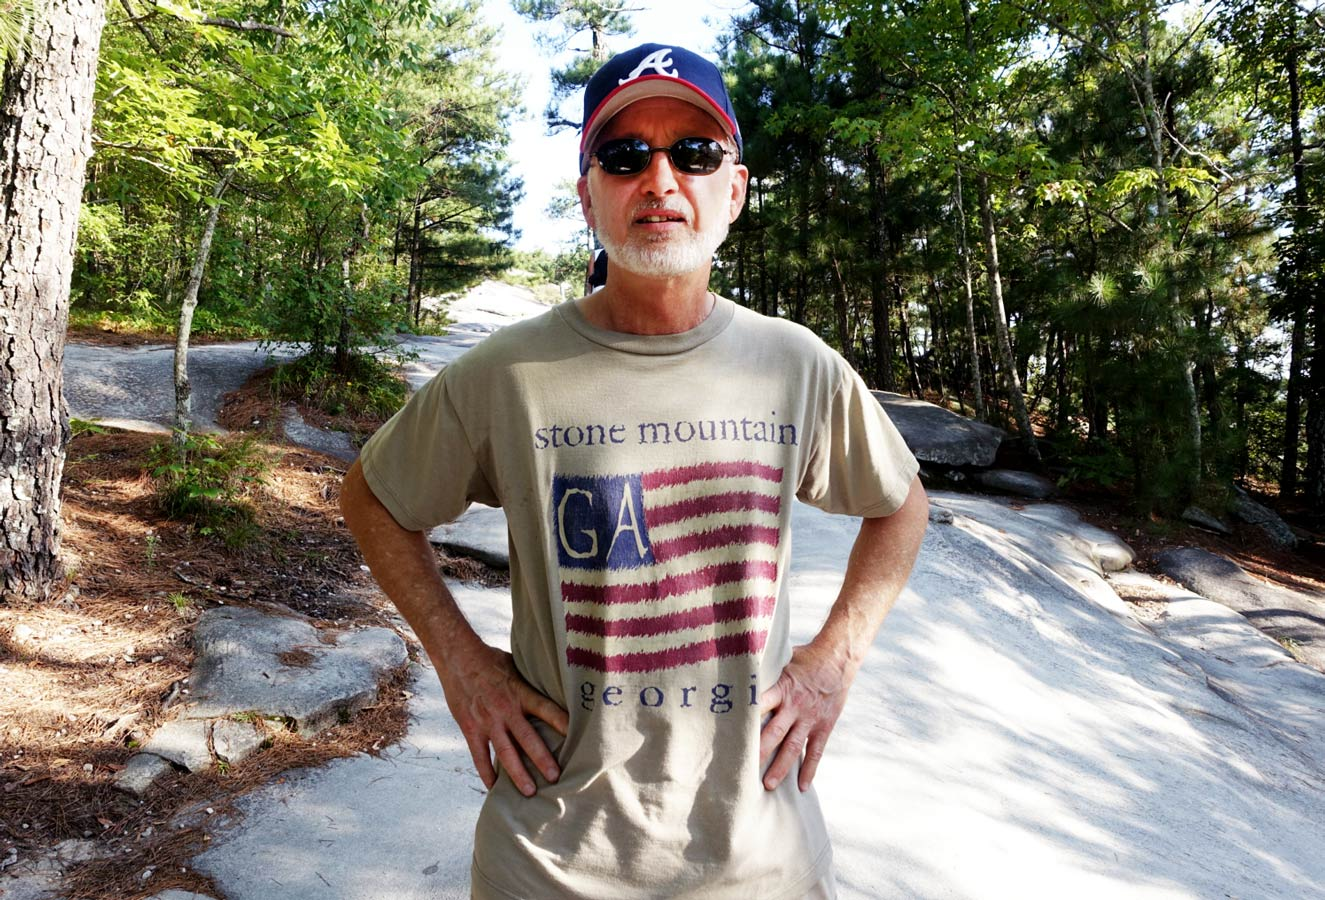 Mountain regular, Gary Peet, has served as Mayor of Stone Mountain and as the city manager and is now retired.